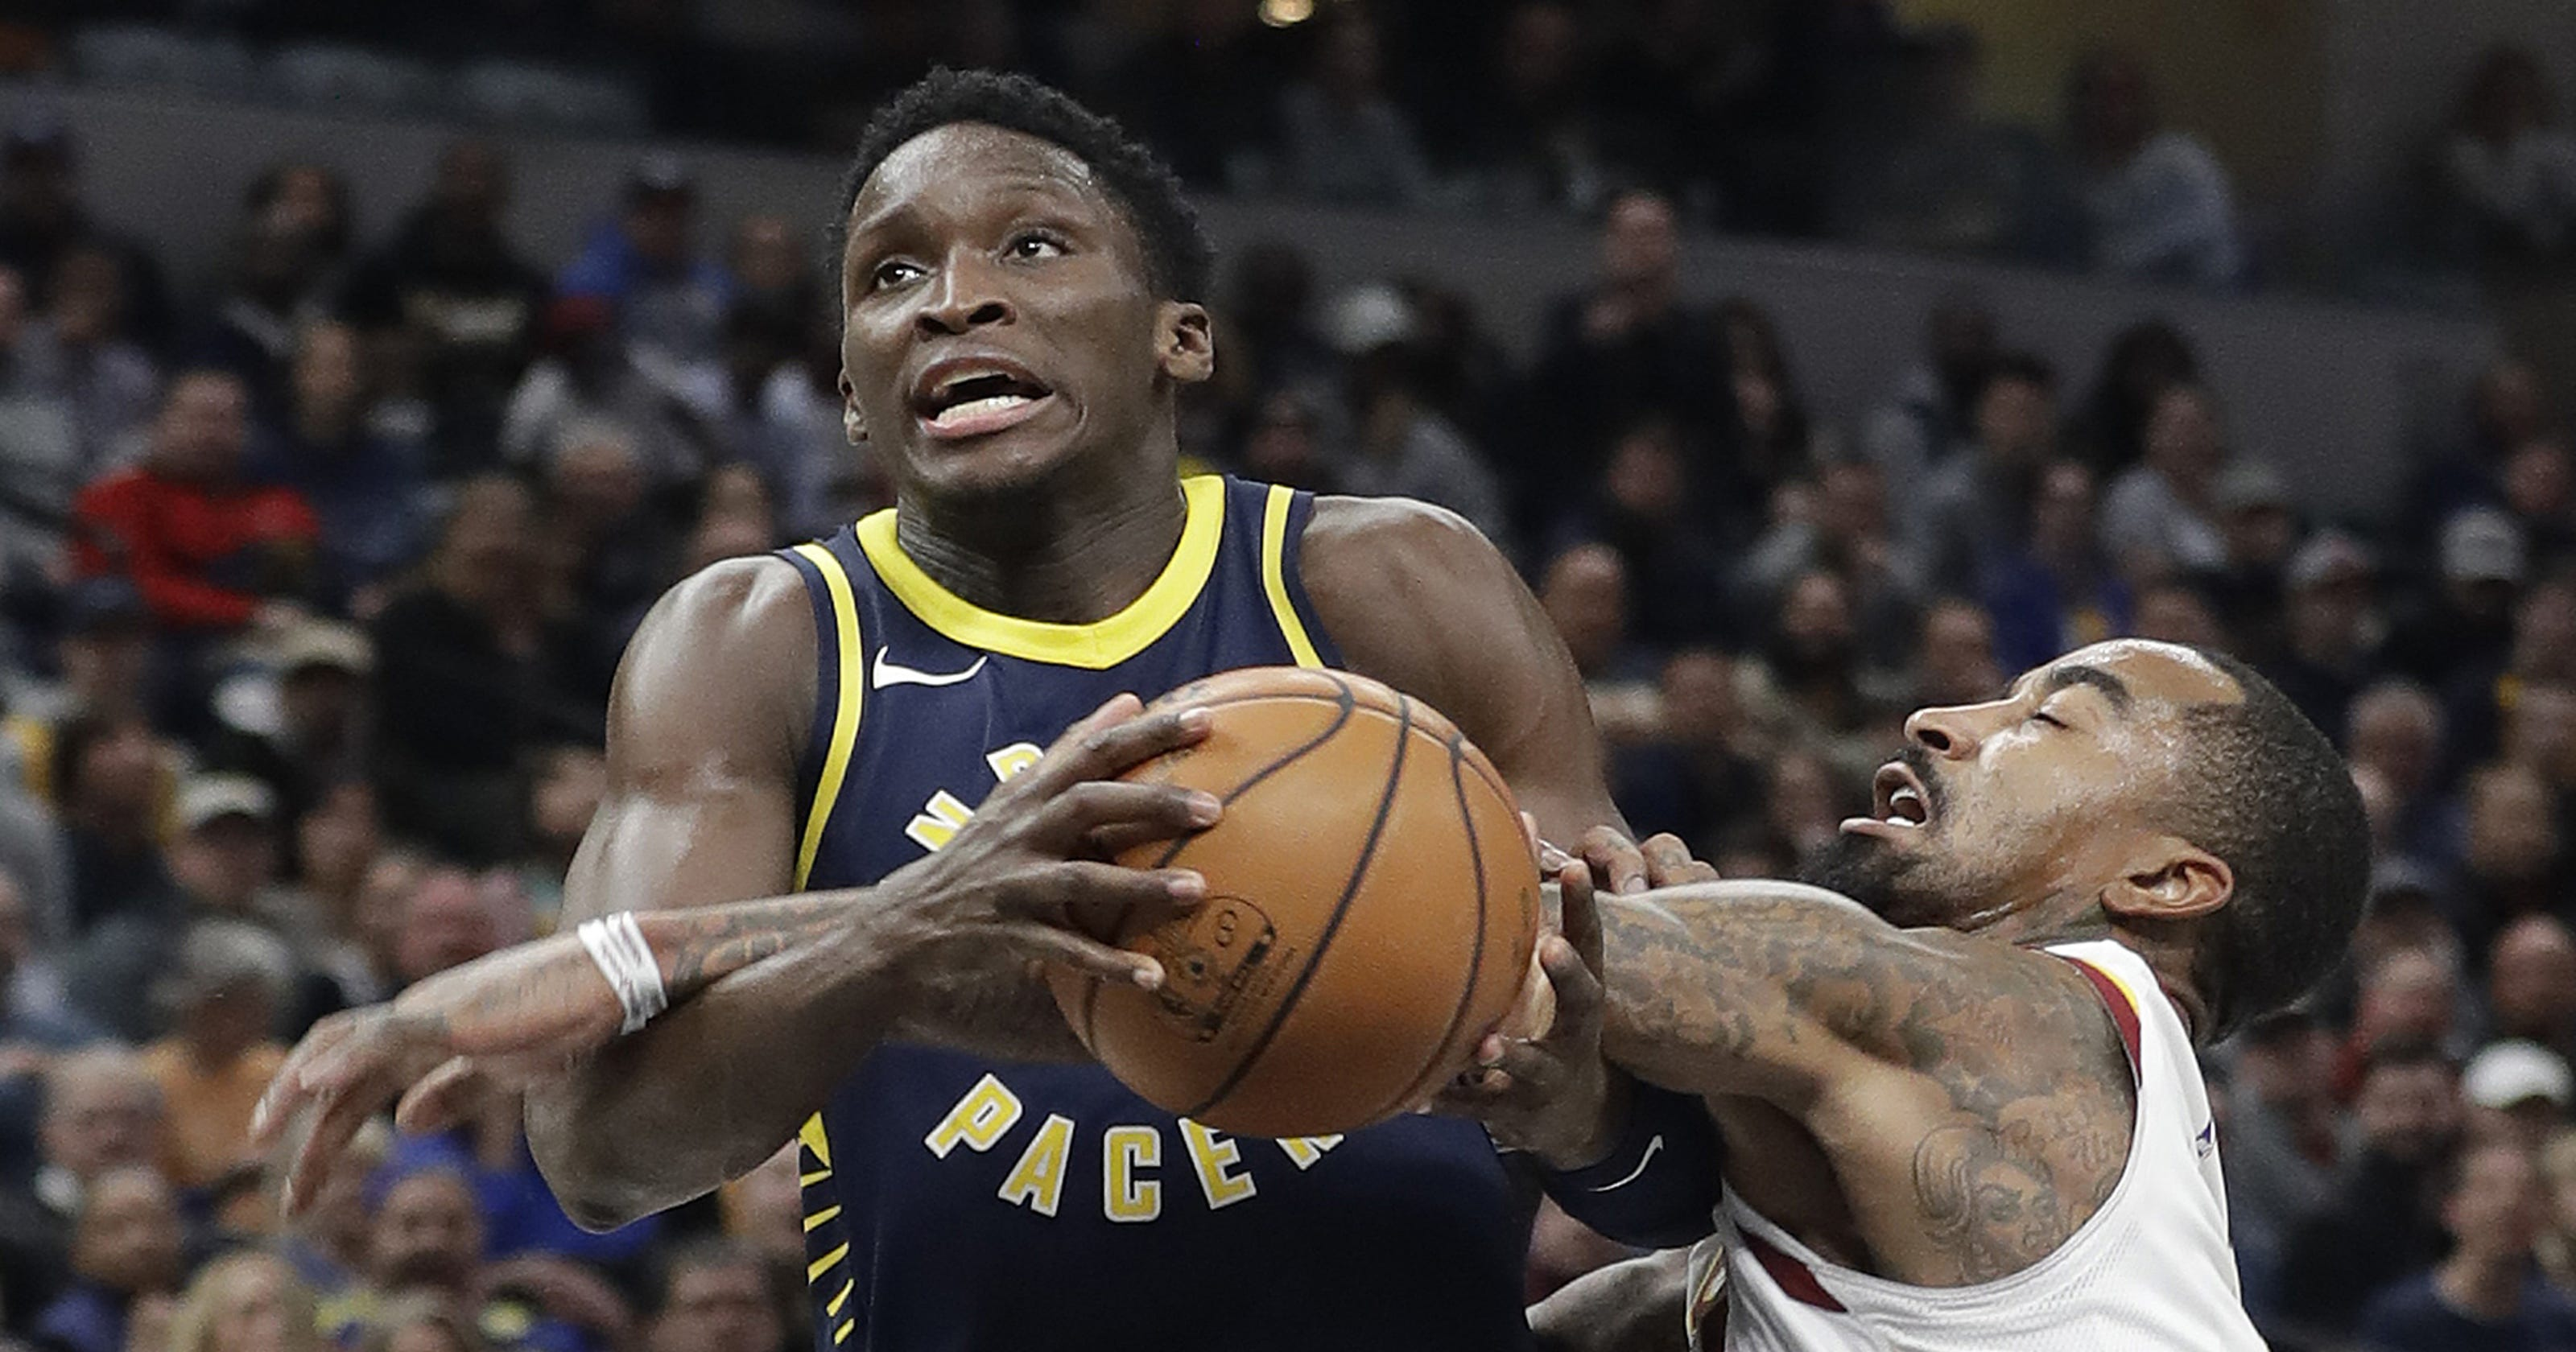 cabbd8c82 Victor Oladipo is embarrassing LeBron James and Paul George. And Twitter  loves him for it.